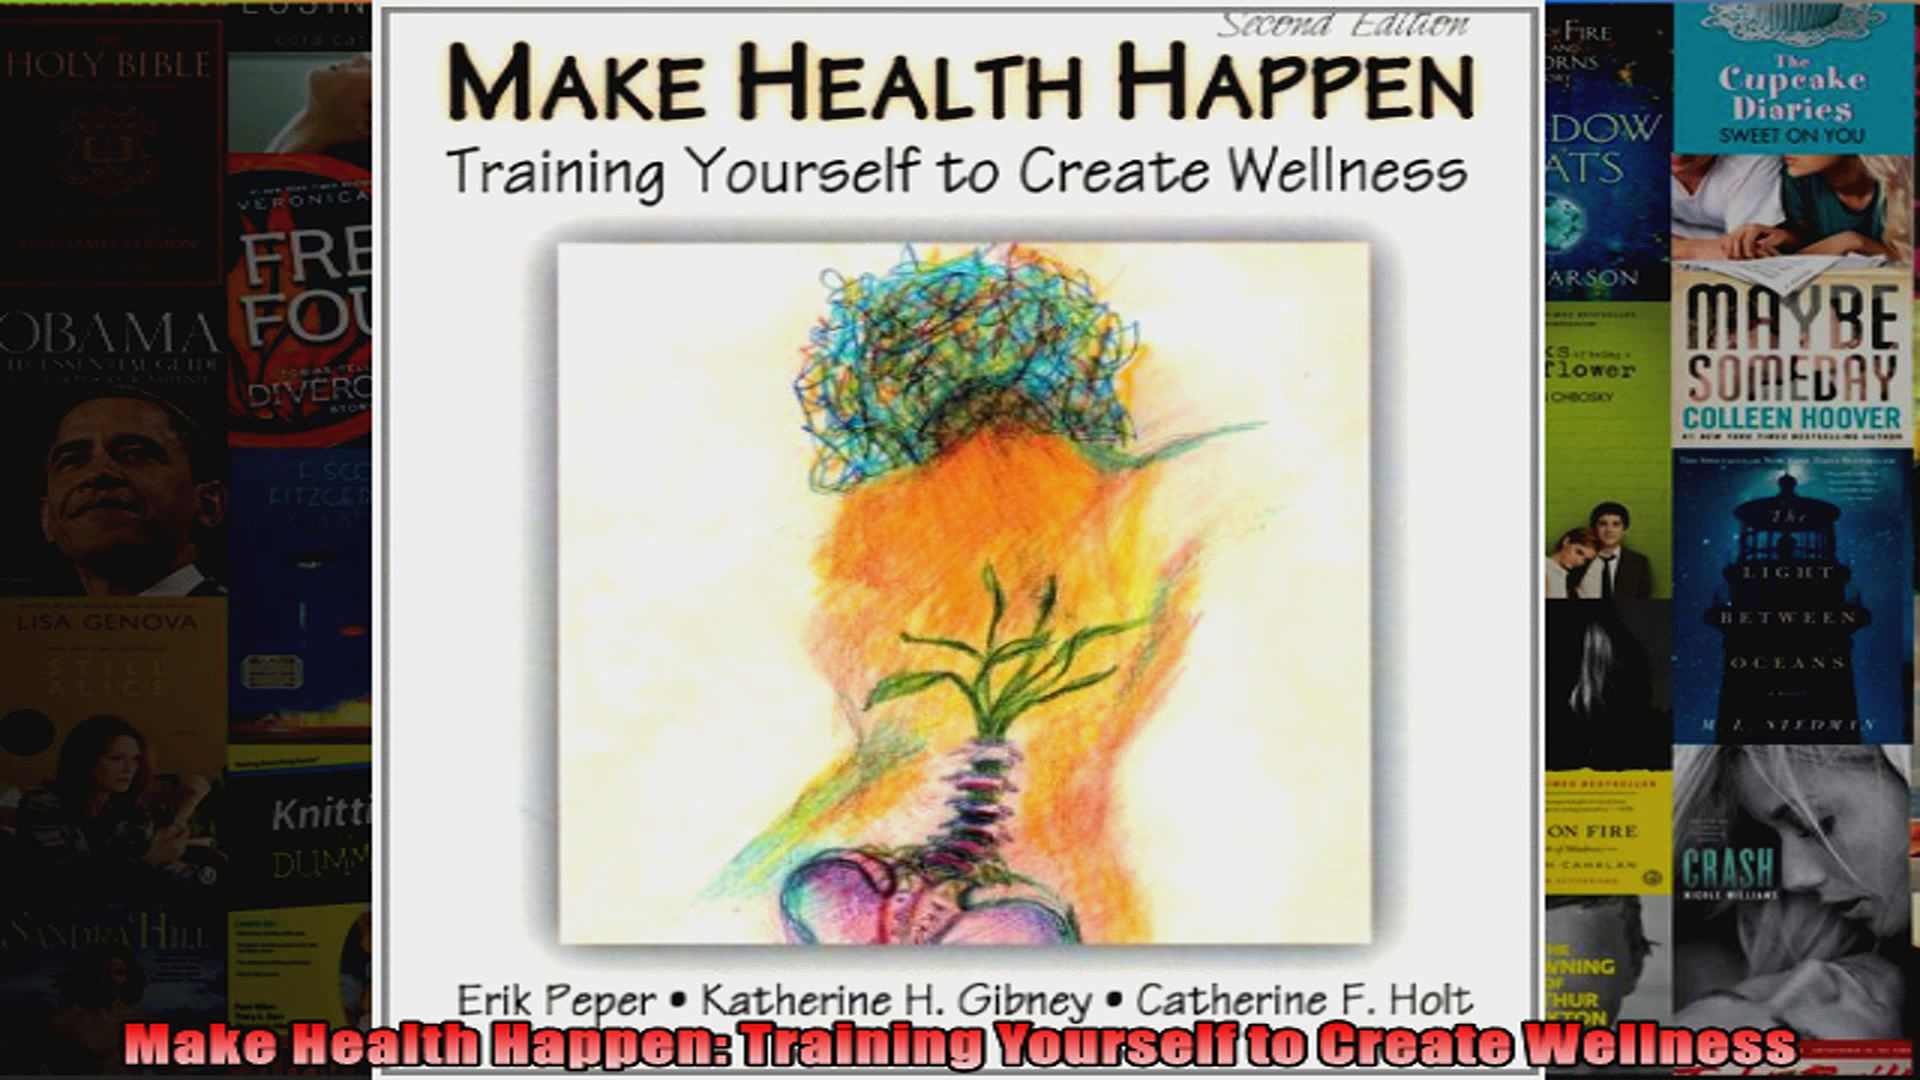 Make Health Happen Training Yourself to Create Wellness